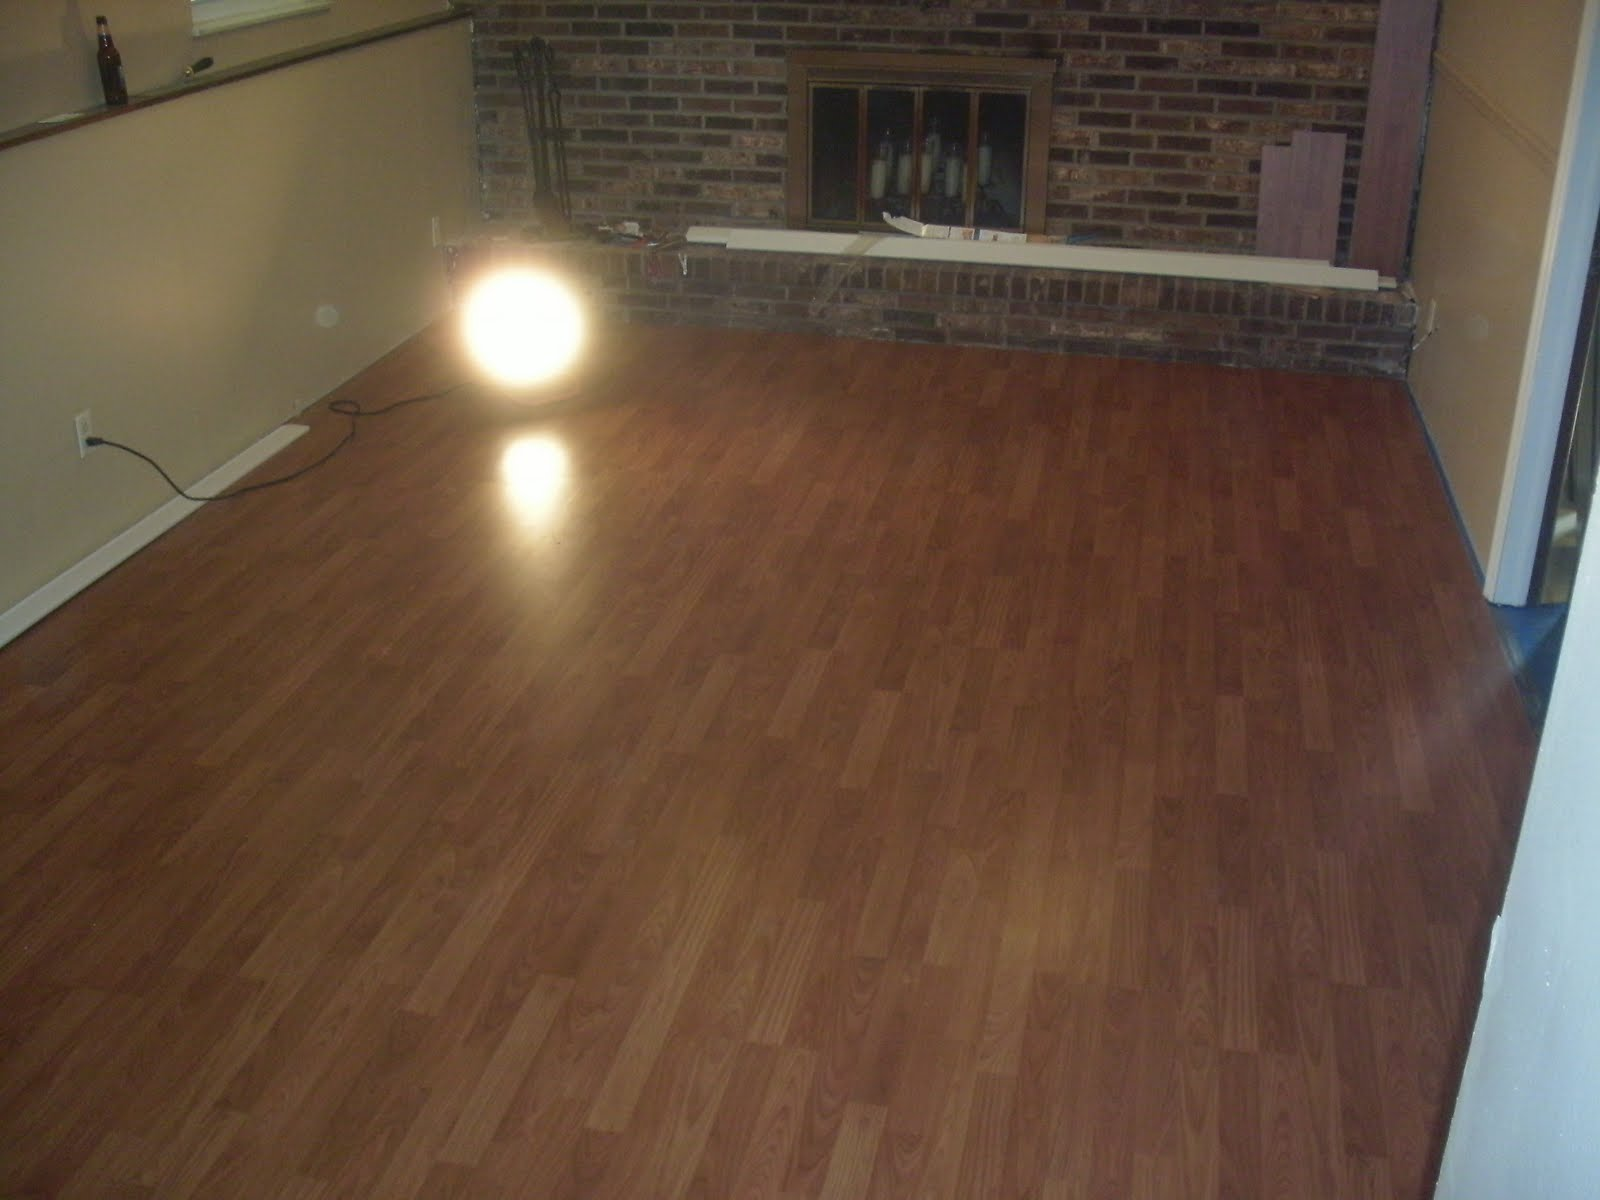 Armstrong laminate flooring problems laminated flooring for Armstrong laminate flooring installation